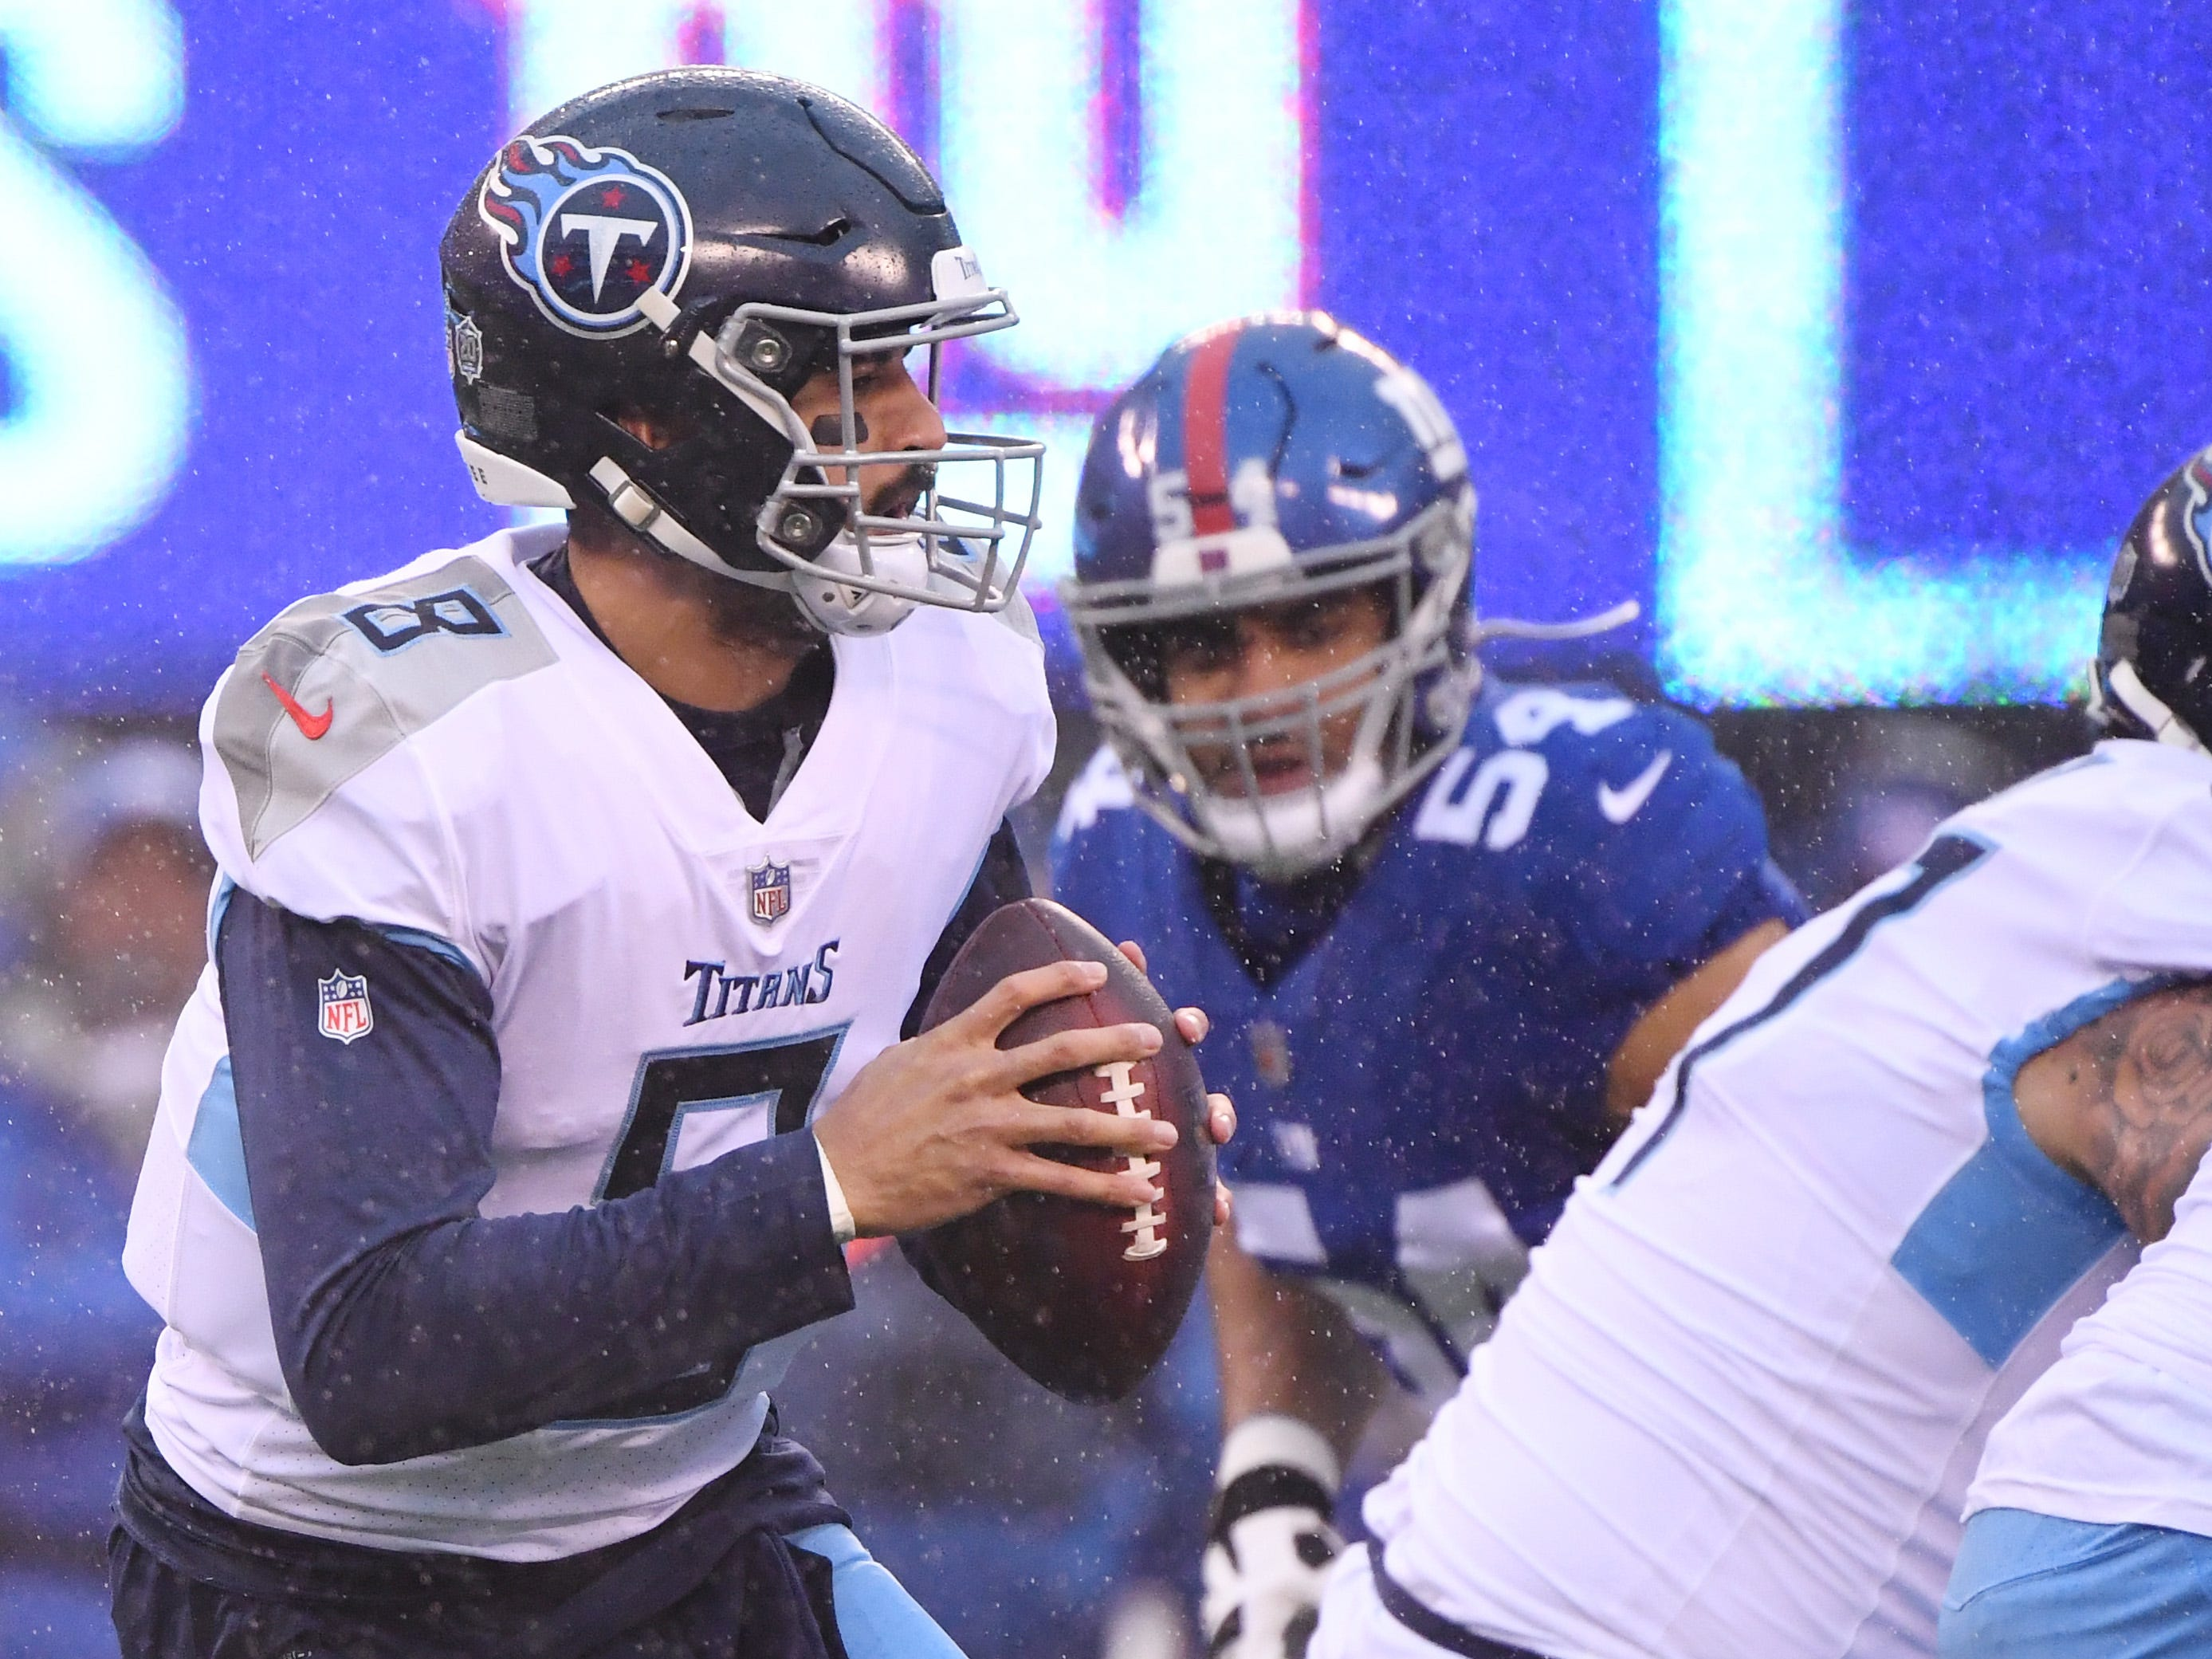 Titans quarterback Marcus Mariota (8) rolls out to pass against the Giants.